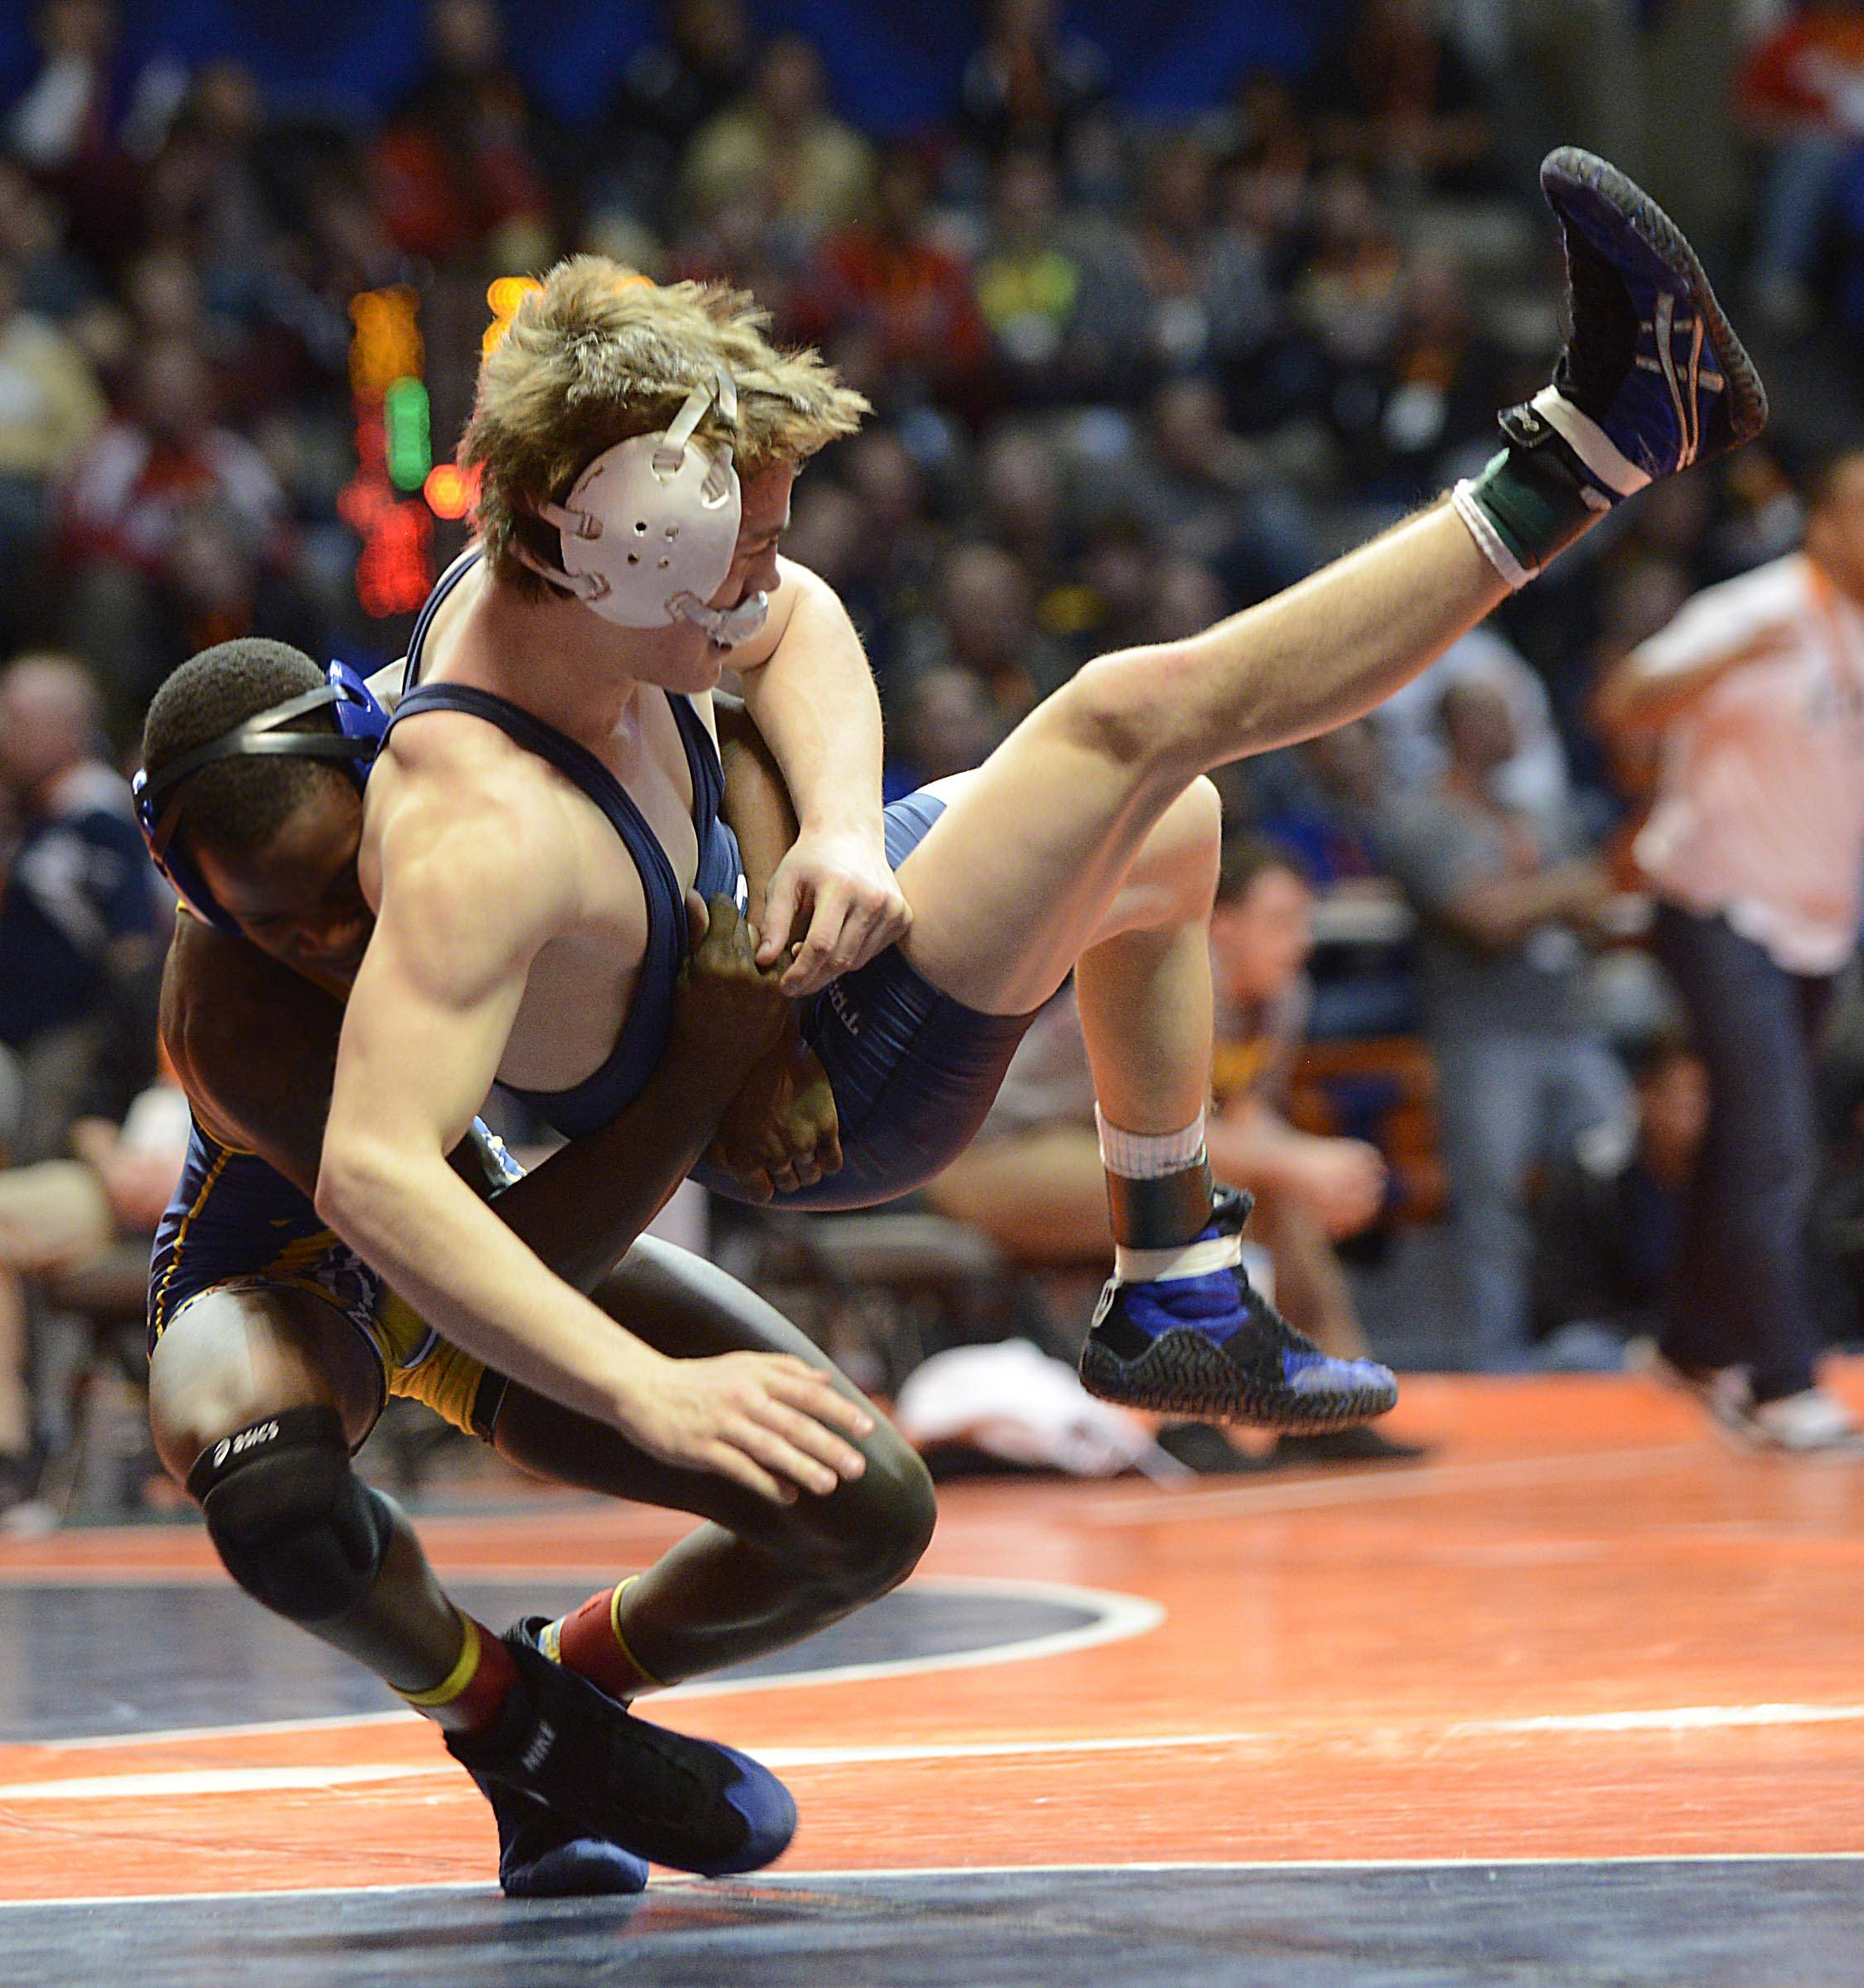 Michael Cullen of Cary-Grove is thrown by Kris Williams of Thornwood Friday in the 120-pound weight class semifinals of the wrestling IHSA Class 3A state tournament at State Farm Center in Champaign.